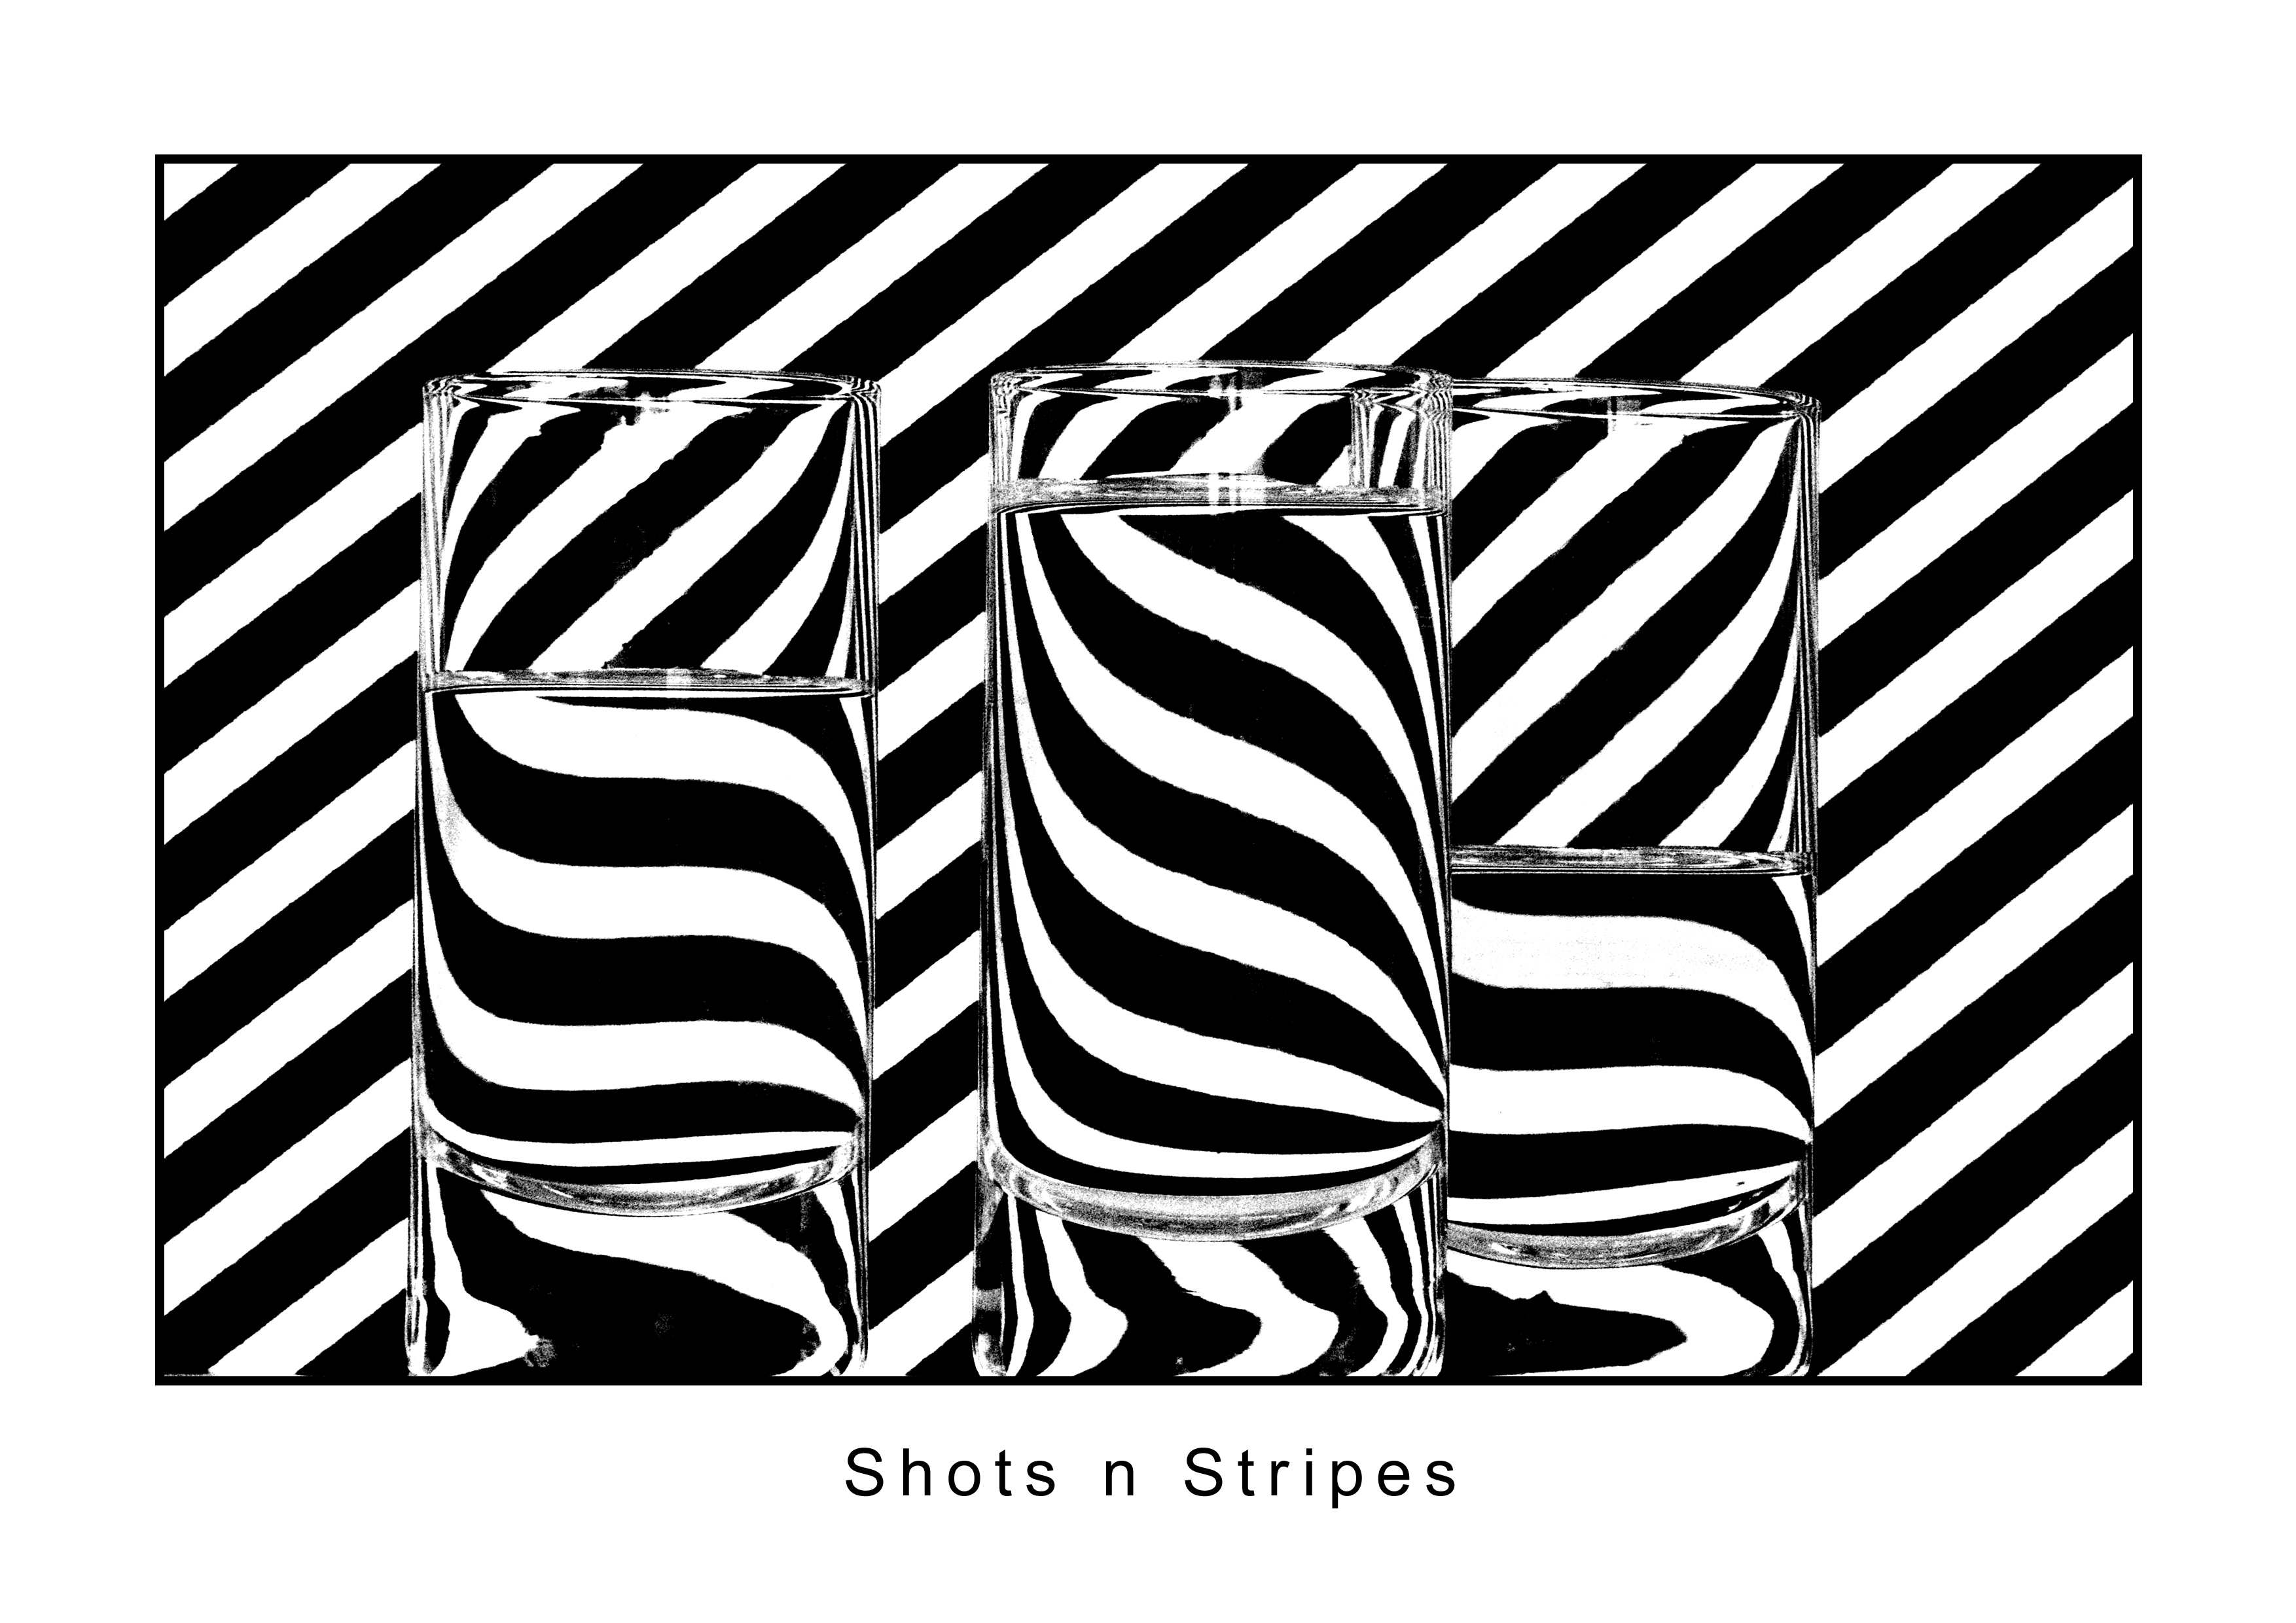 Shots and Stripes